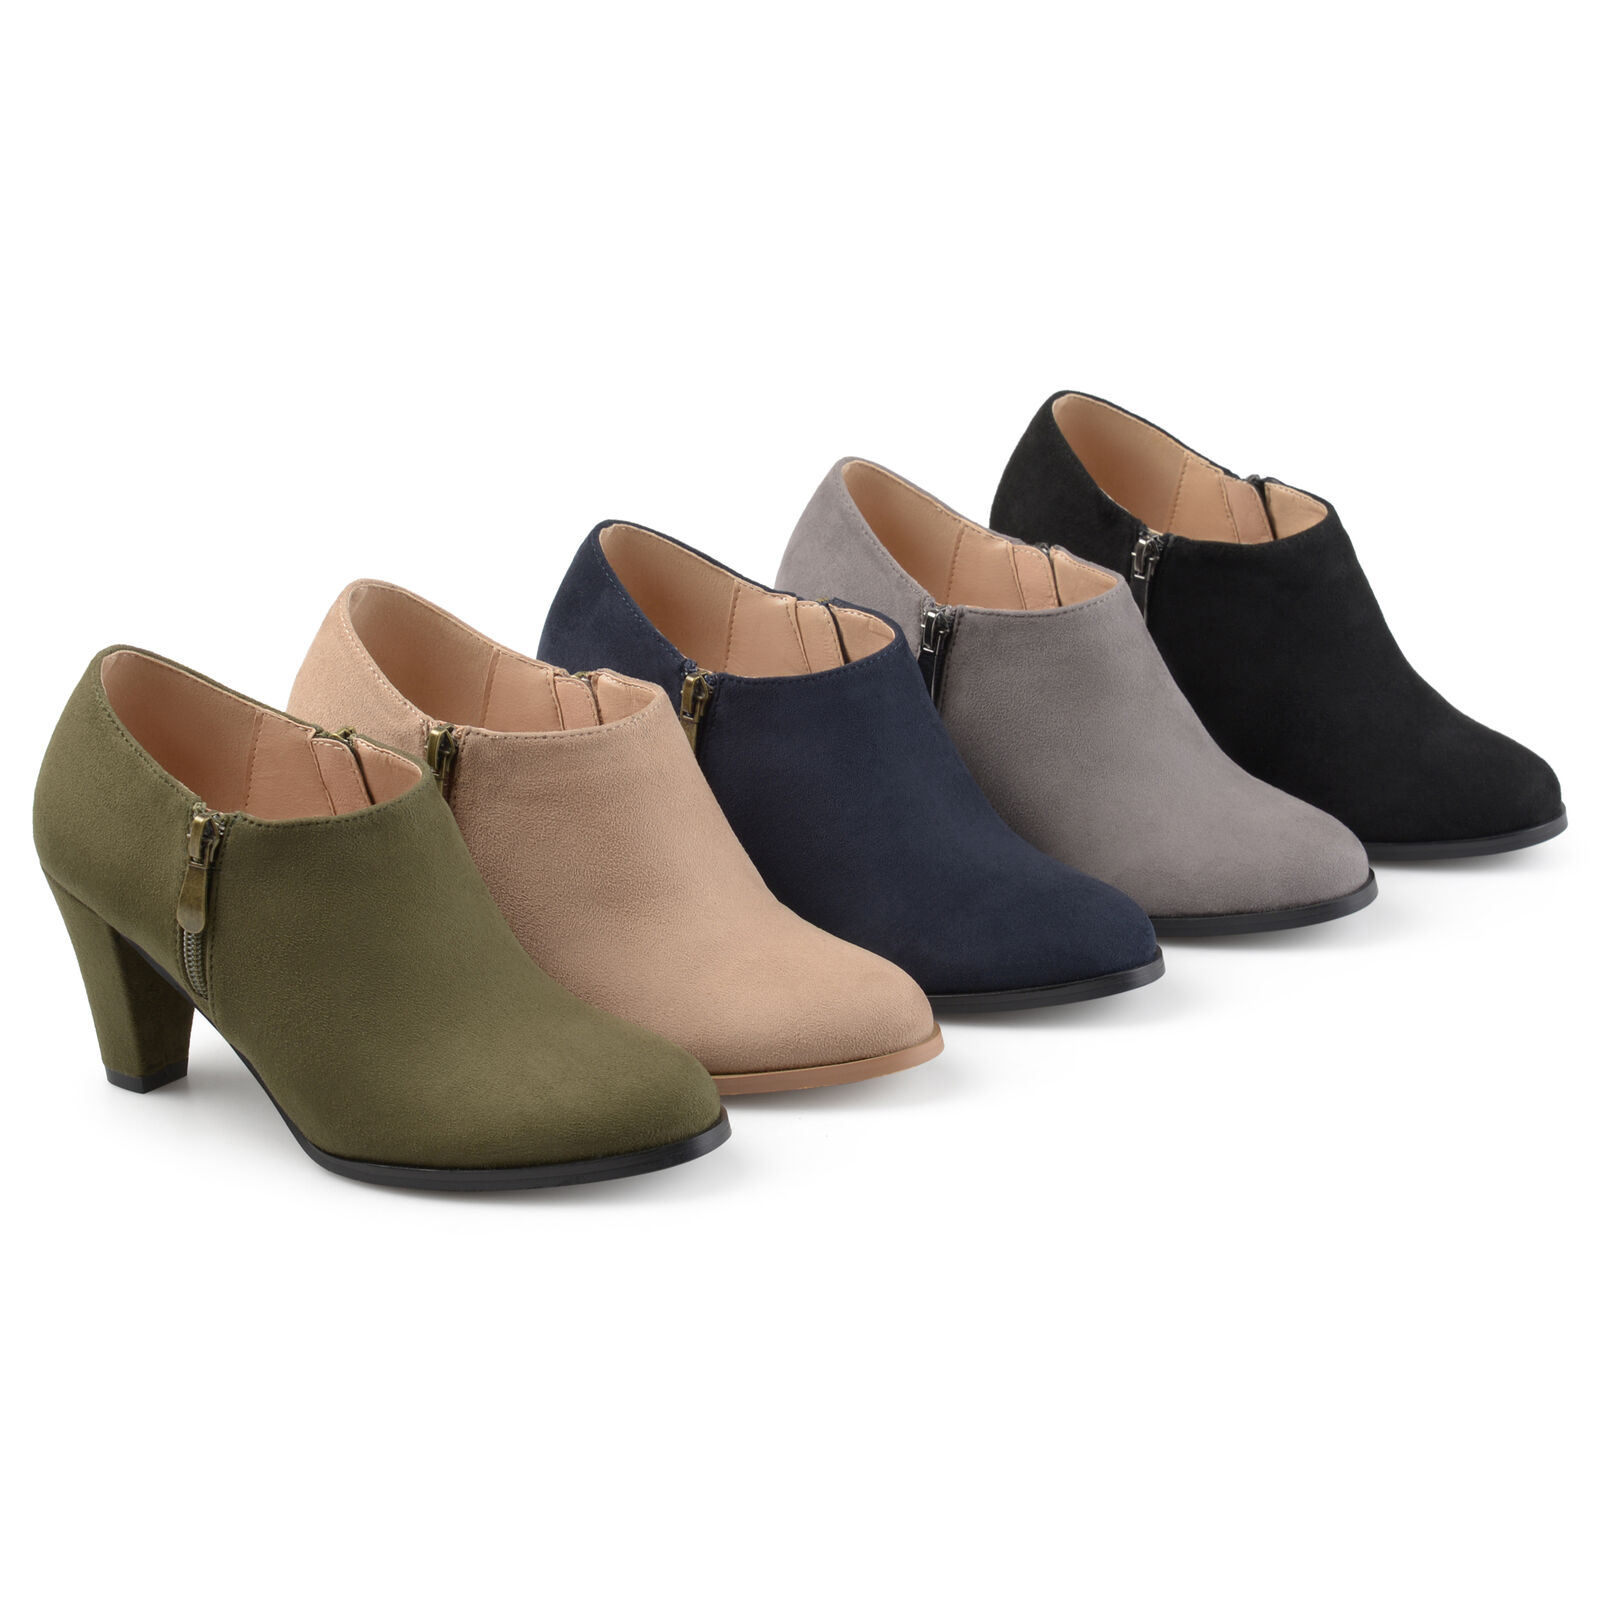 Brinley Co Womens Sadra Faux Suede Low cut Comfort sole Ankle Booties New